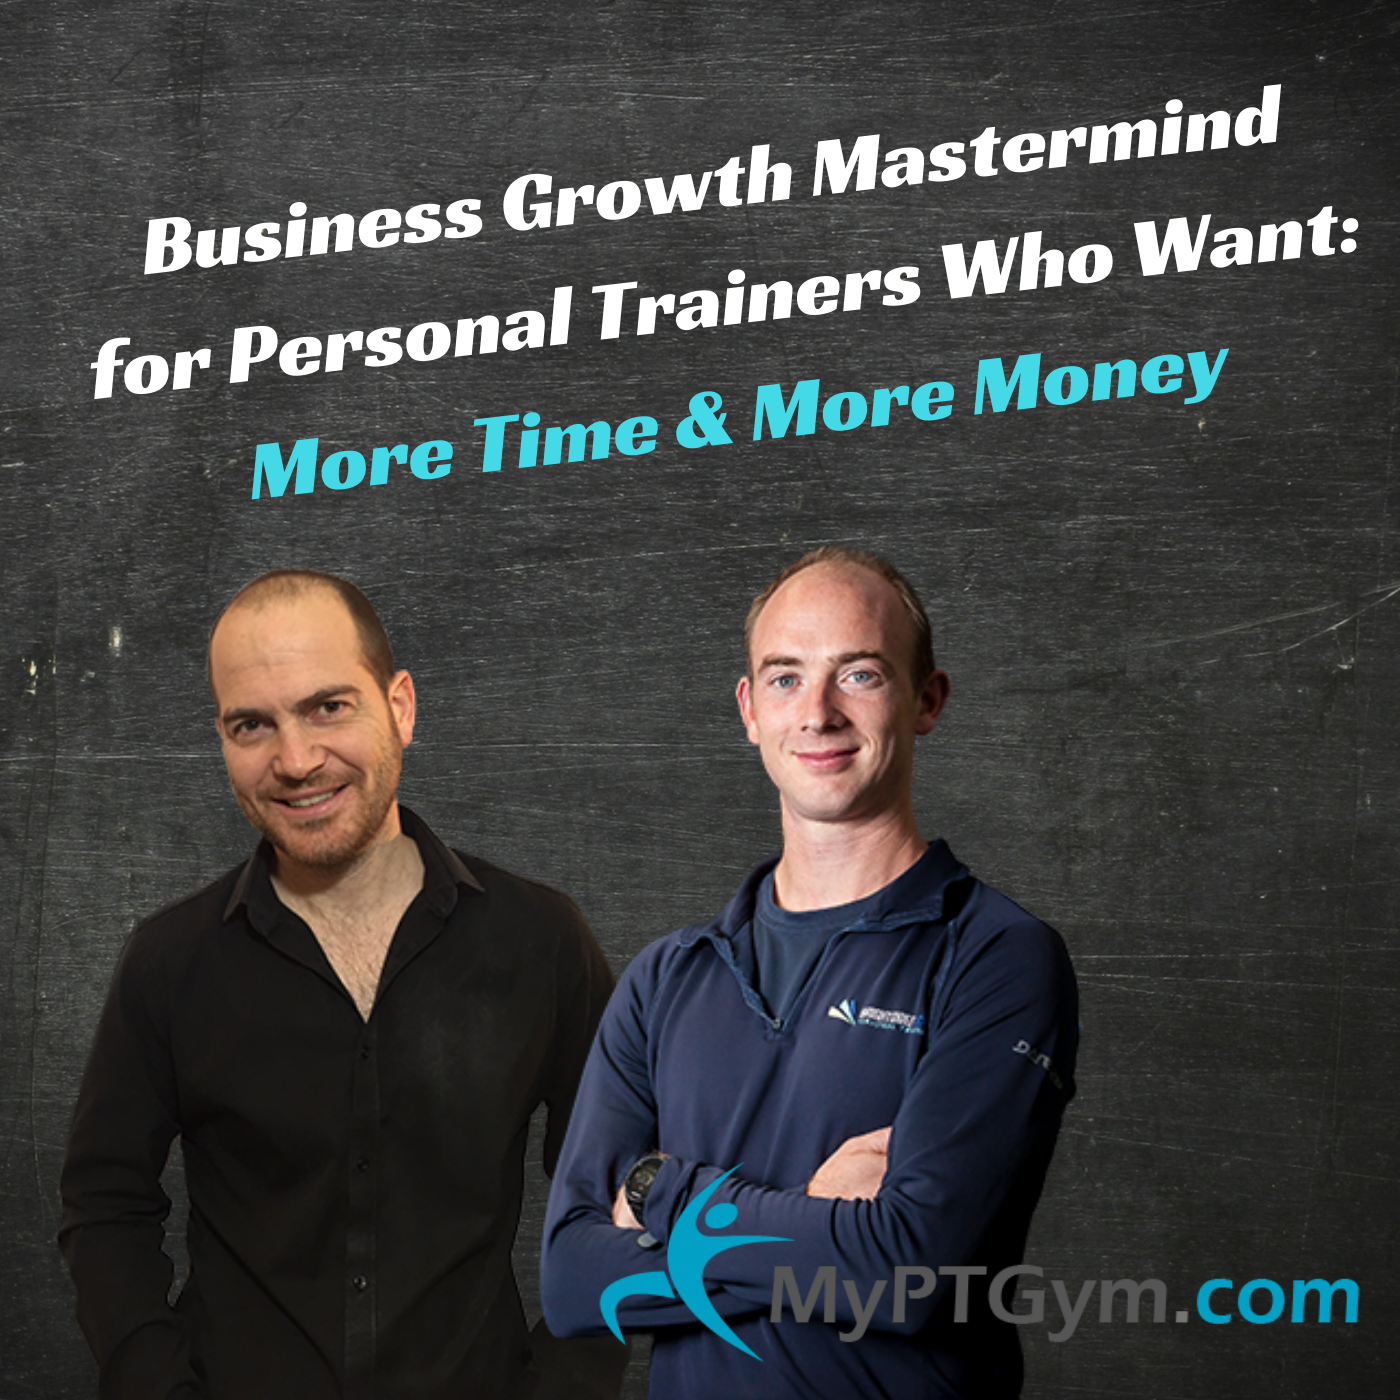 Personal Trainer Business Mastermind